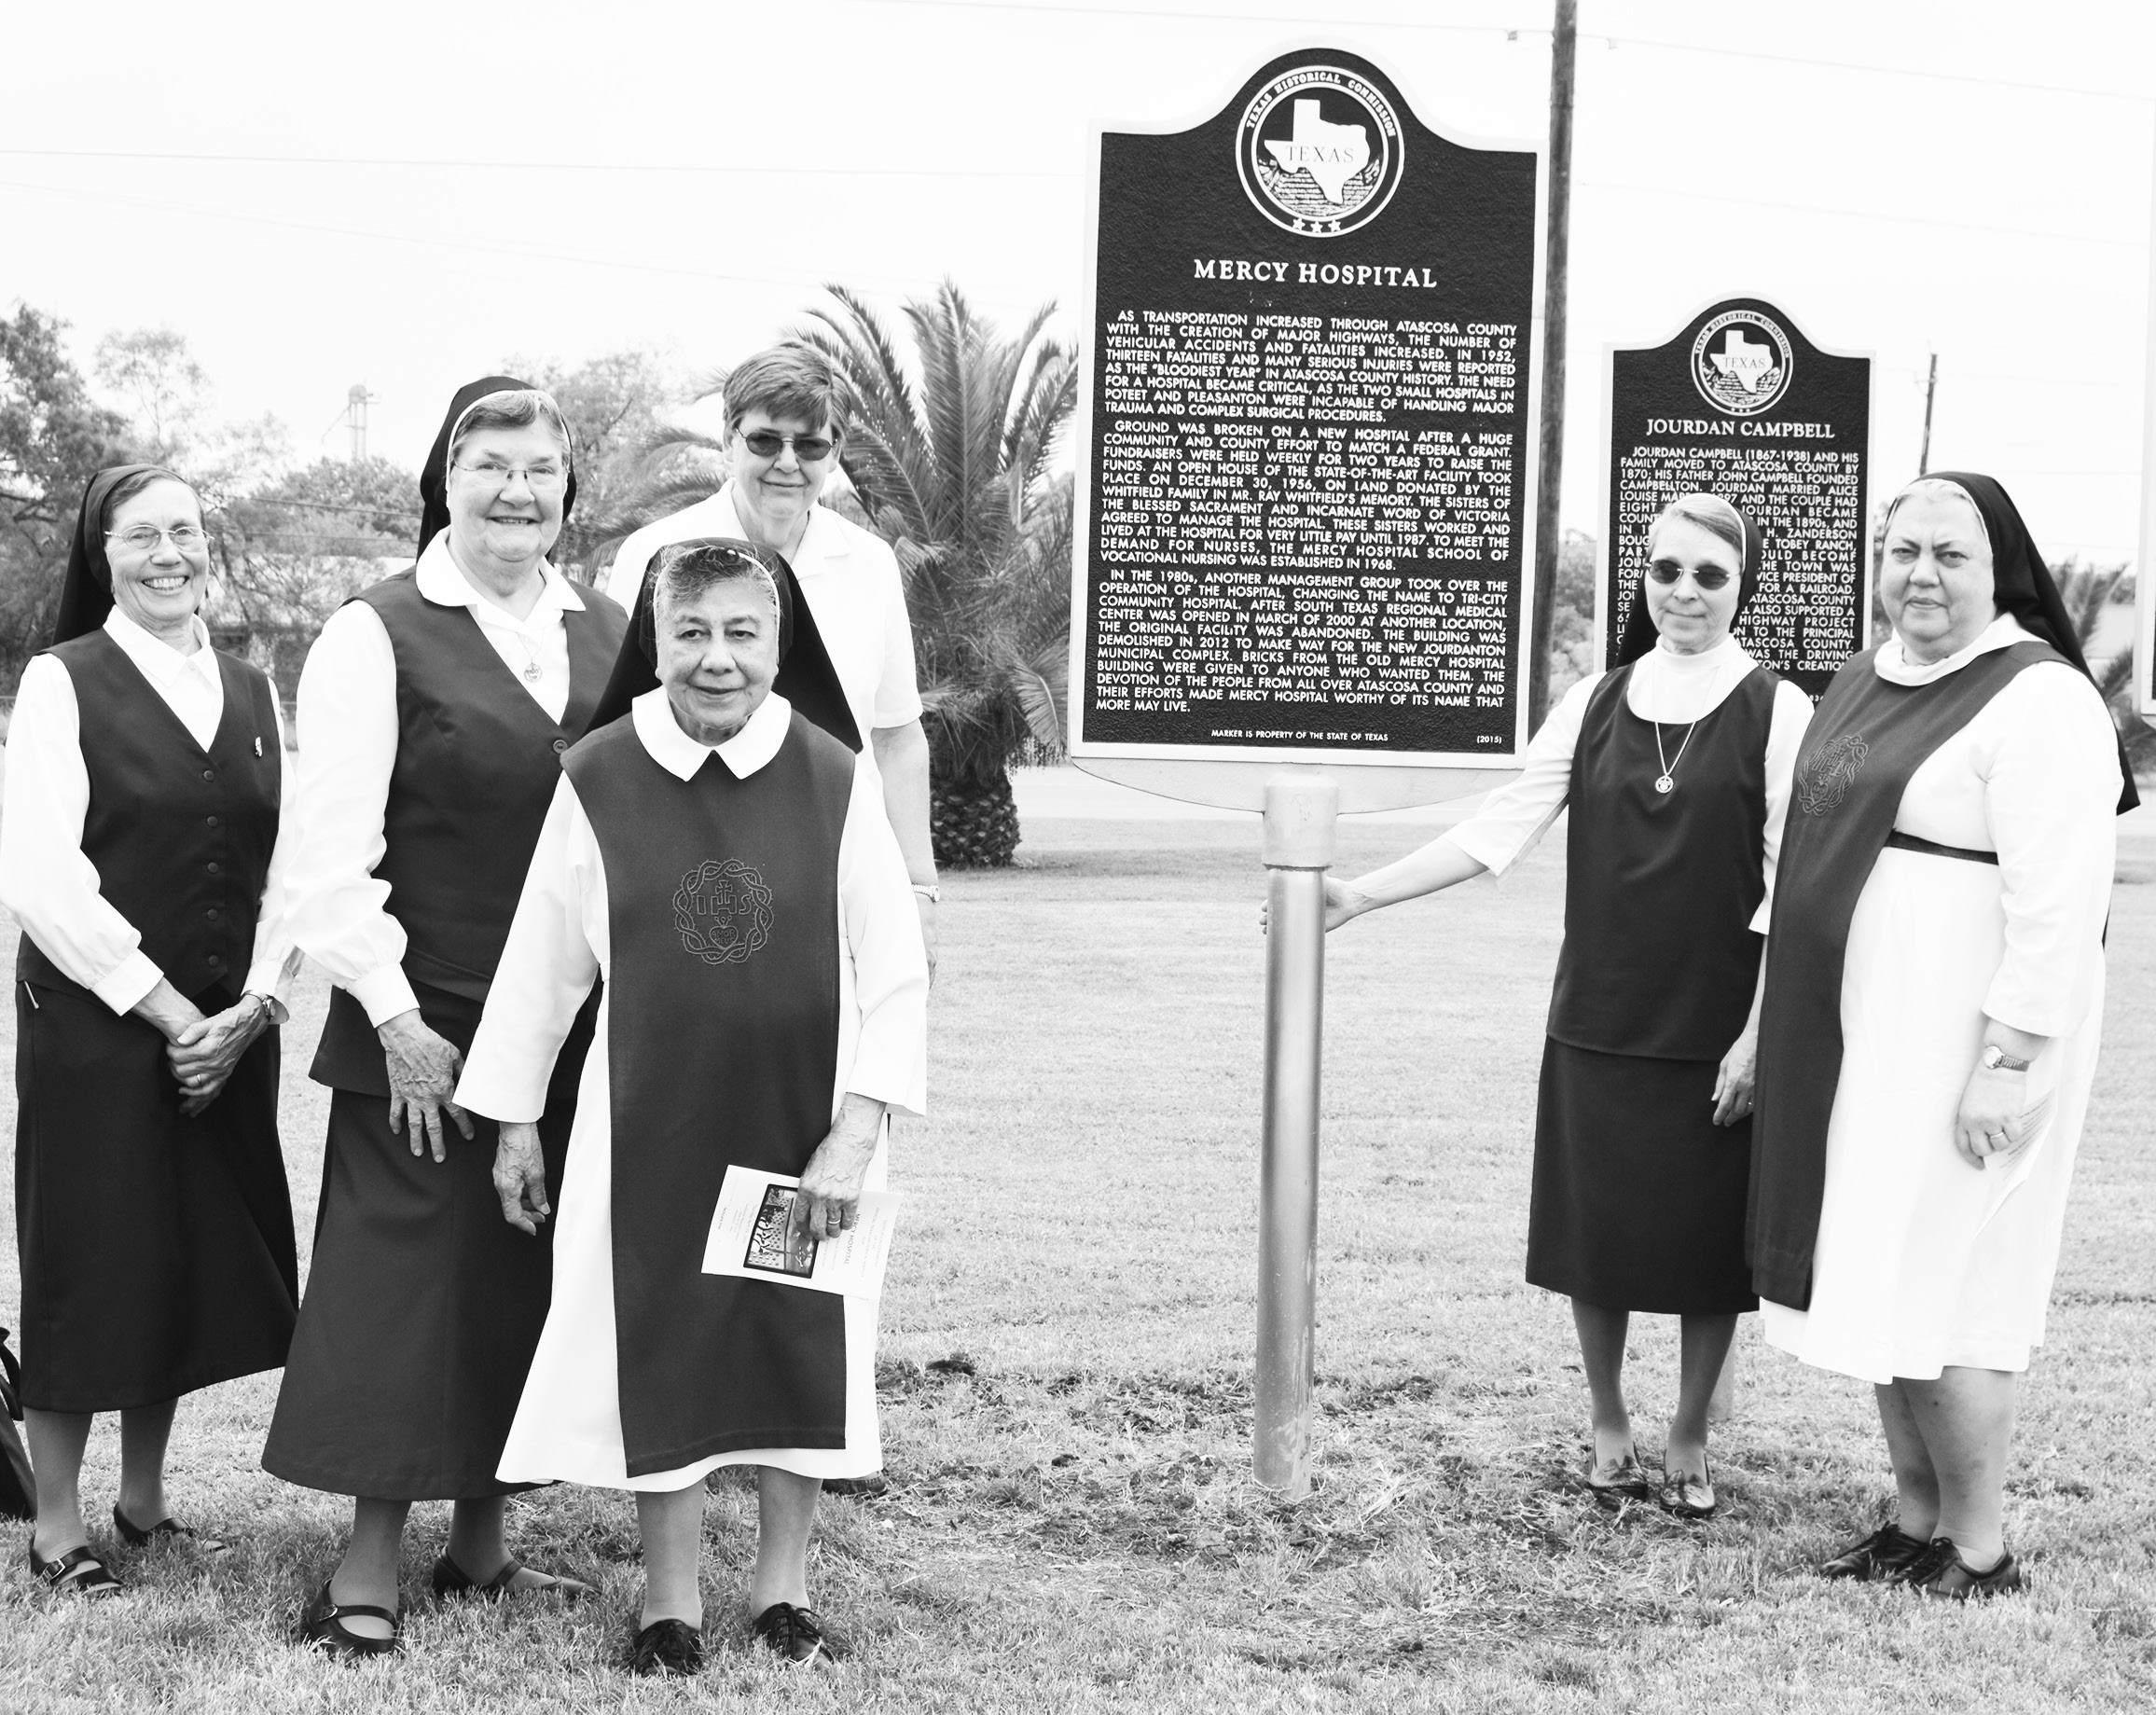 The Atascosa County Historical Commission held a dedication ceremony at the Jourdanton Municipal Complex for a new marker commemorating Mercy Hospital. Unveiling the marker was, second from left, Sister Stephana Marbach, Superior General of Incarnate Word and Blessed Sacrament and some of the nuns who worked at Mercy Hospital. Left to right are Sister Mary Beth Cernoch, Sister Rachael Gomez, Sister Maureen Sprinzel, Sister Magdalen Carpenter and Sister Paschaline Kutak.